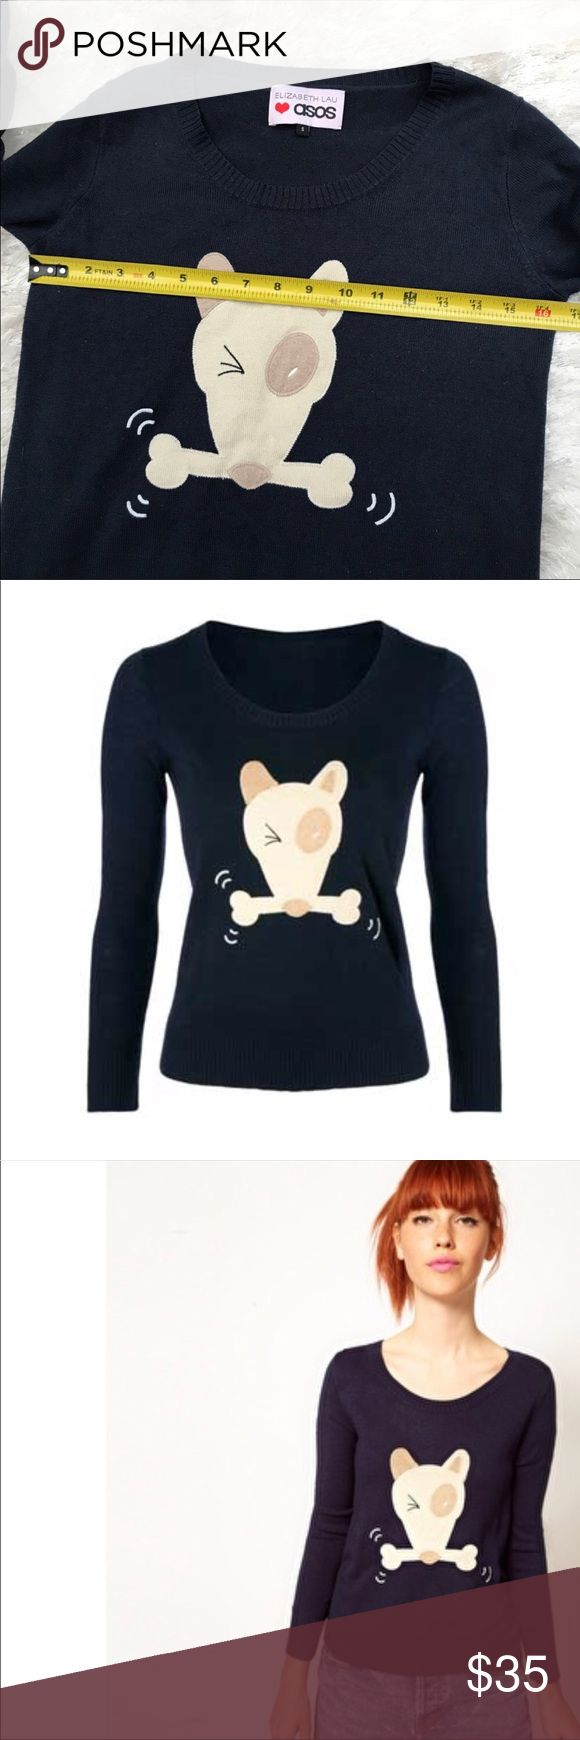 """ASOS Elizabeth Lau Dog & Bone Sweater Elizabeth Lau for ASOS """"Dog & Bone"""" Sweater ($131.93 at US.ASOS.com) features an adorable illustration of a Spud McKenzie-ish bull terrier clutching a bone with its teeth, but what makes the design particularly funny is that, in Cockney rhyming slang, the expression """"dog and bone"""" means """"phone,"""" as in """"get on the dog and bone.""""   Approx. bust is 16.5. ASOS Sweaters Crew & Scoop Necks"""